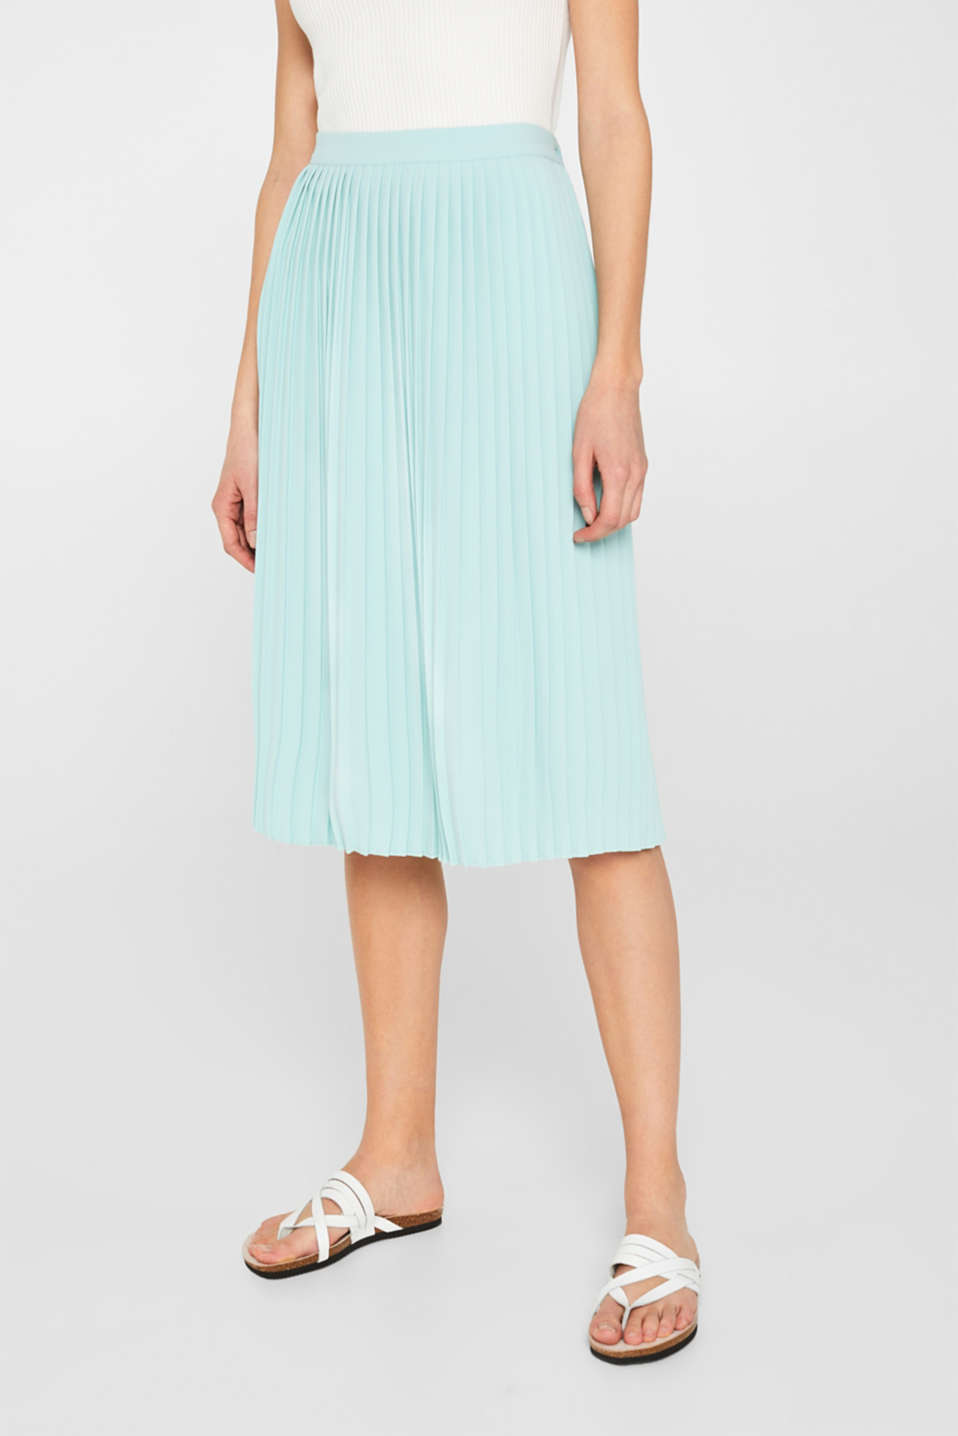 Pleated skirt in a midi length, LIGHT AQUA GREEN, detail image number 5